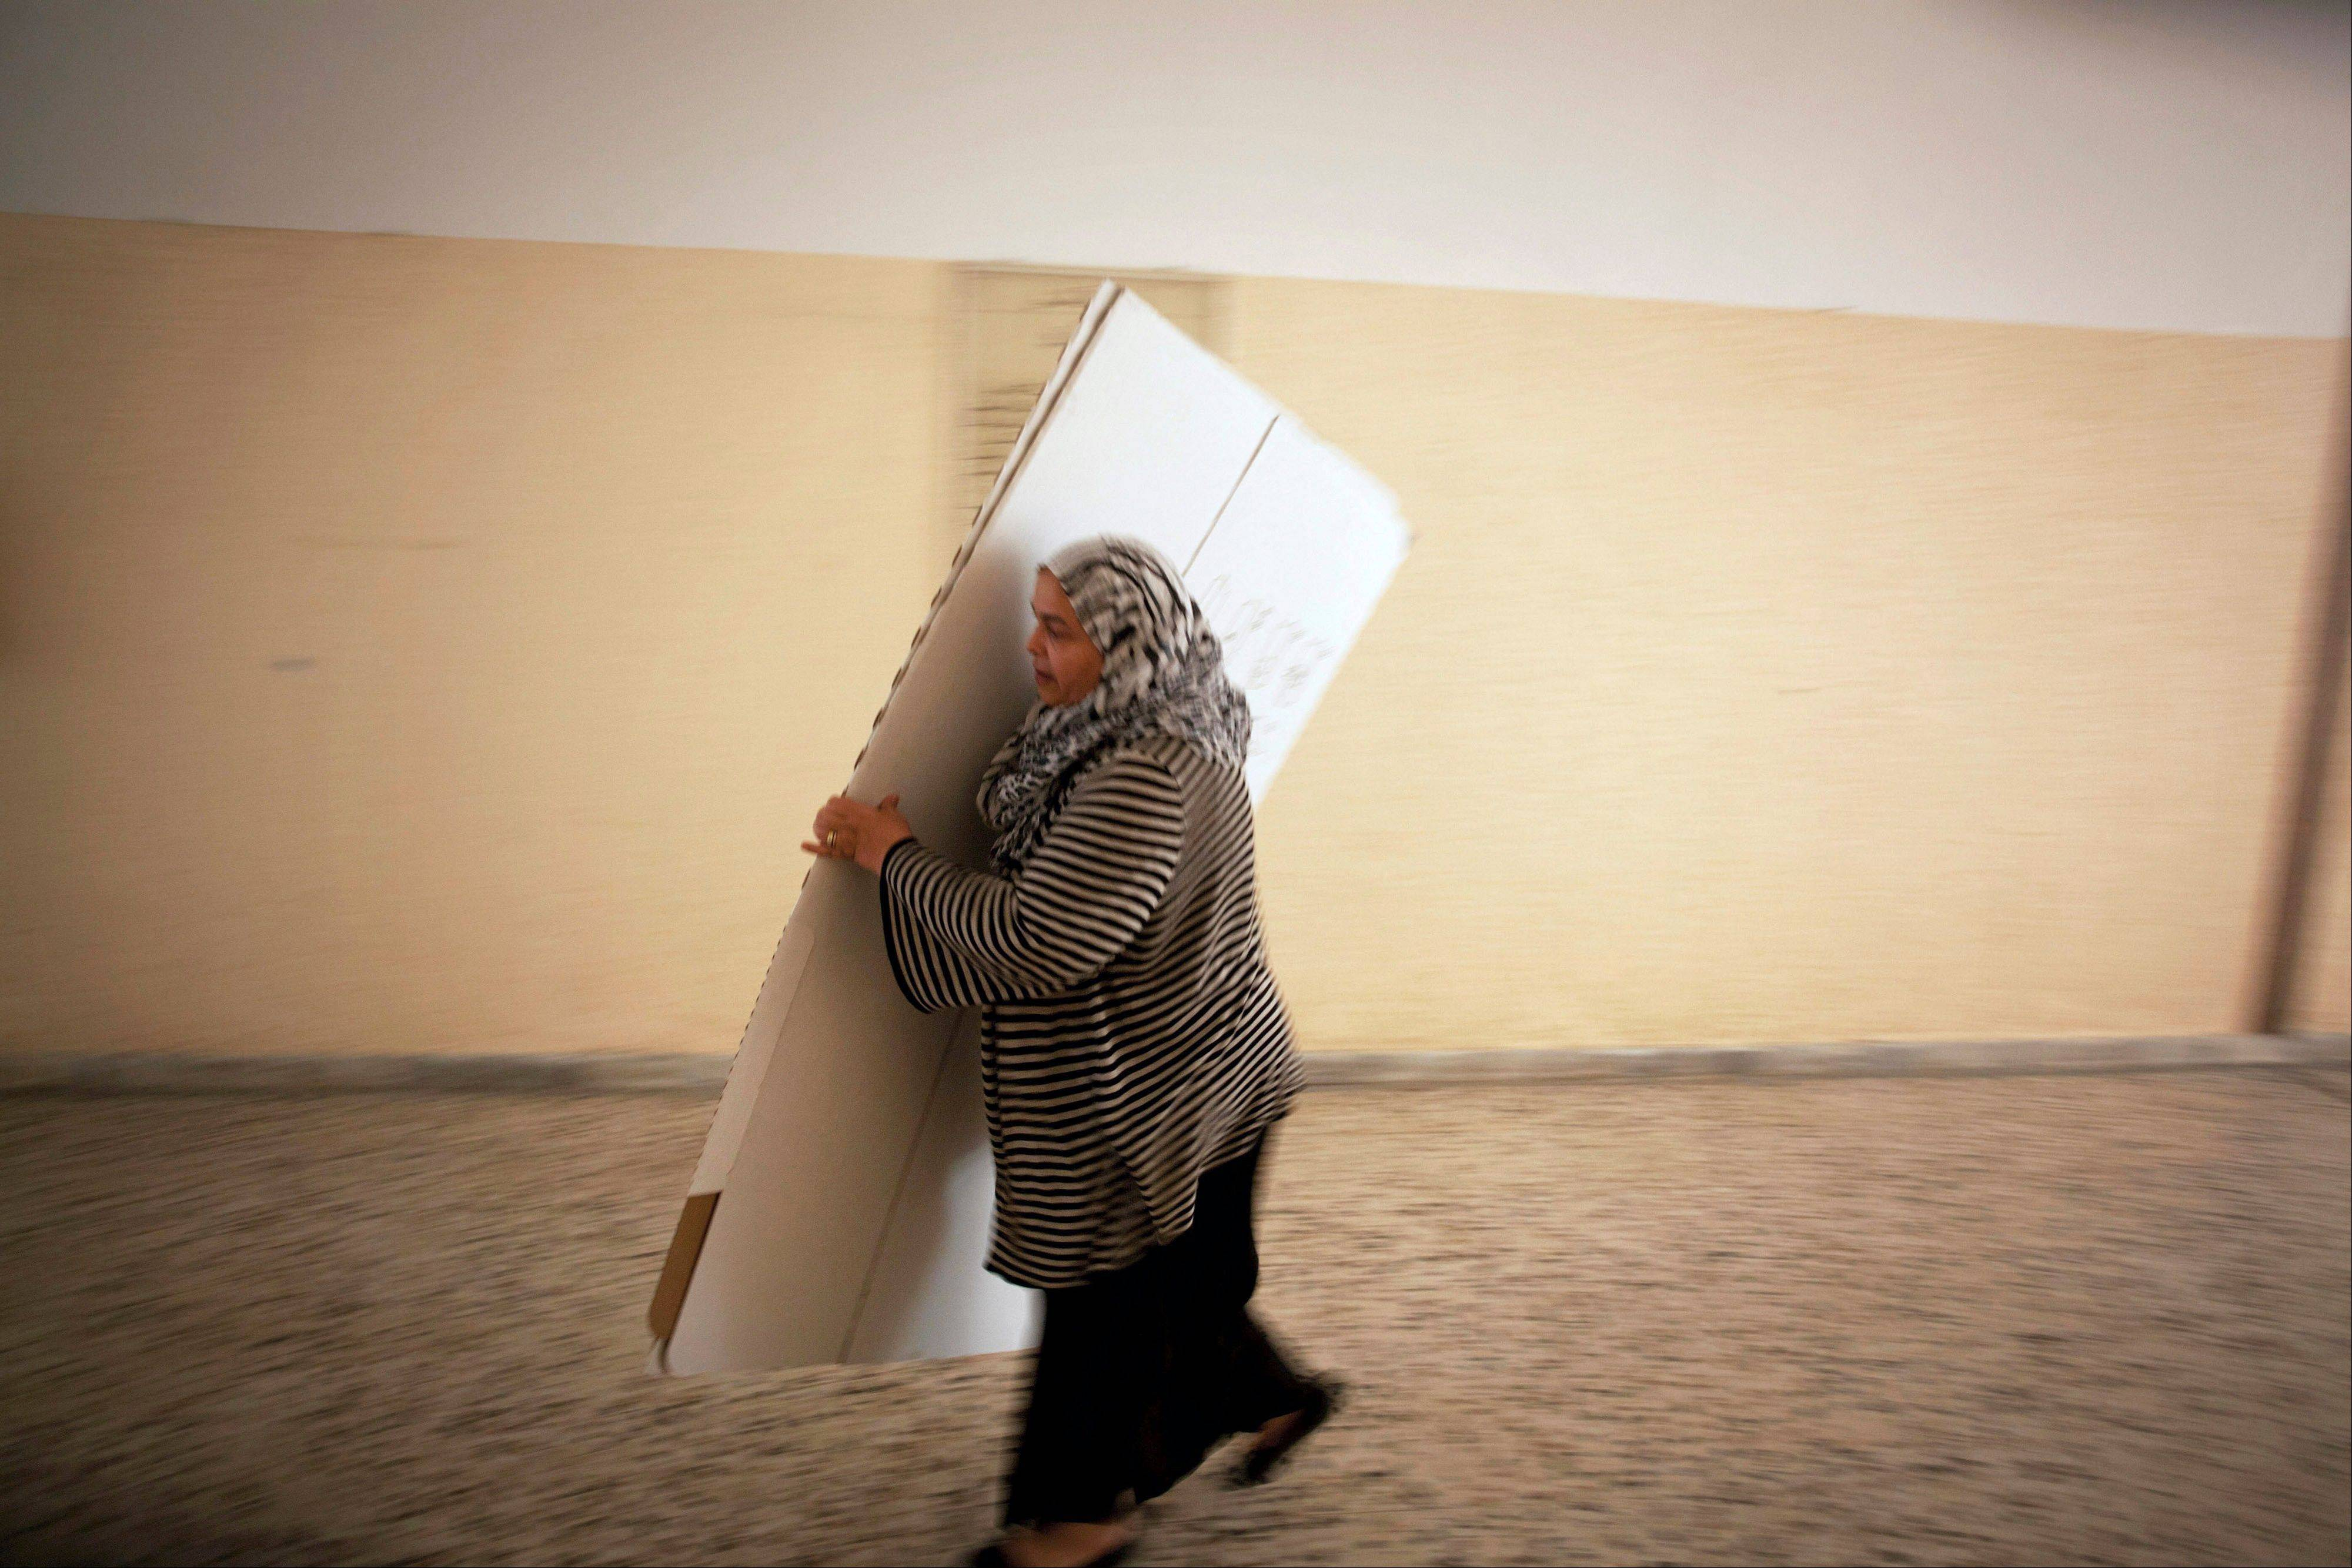 A Libyan election official works at a polling station Friday in Tripoli, Libya. The Libyan National Assembly elections — the first free election since 1969 — will take place Saturday.